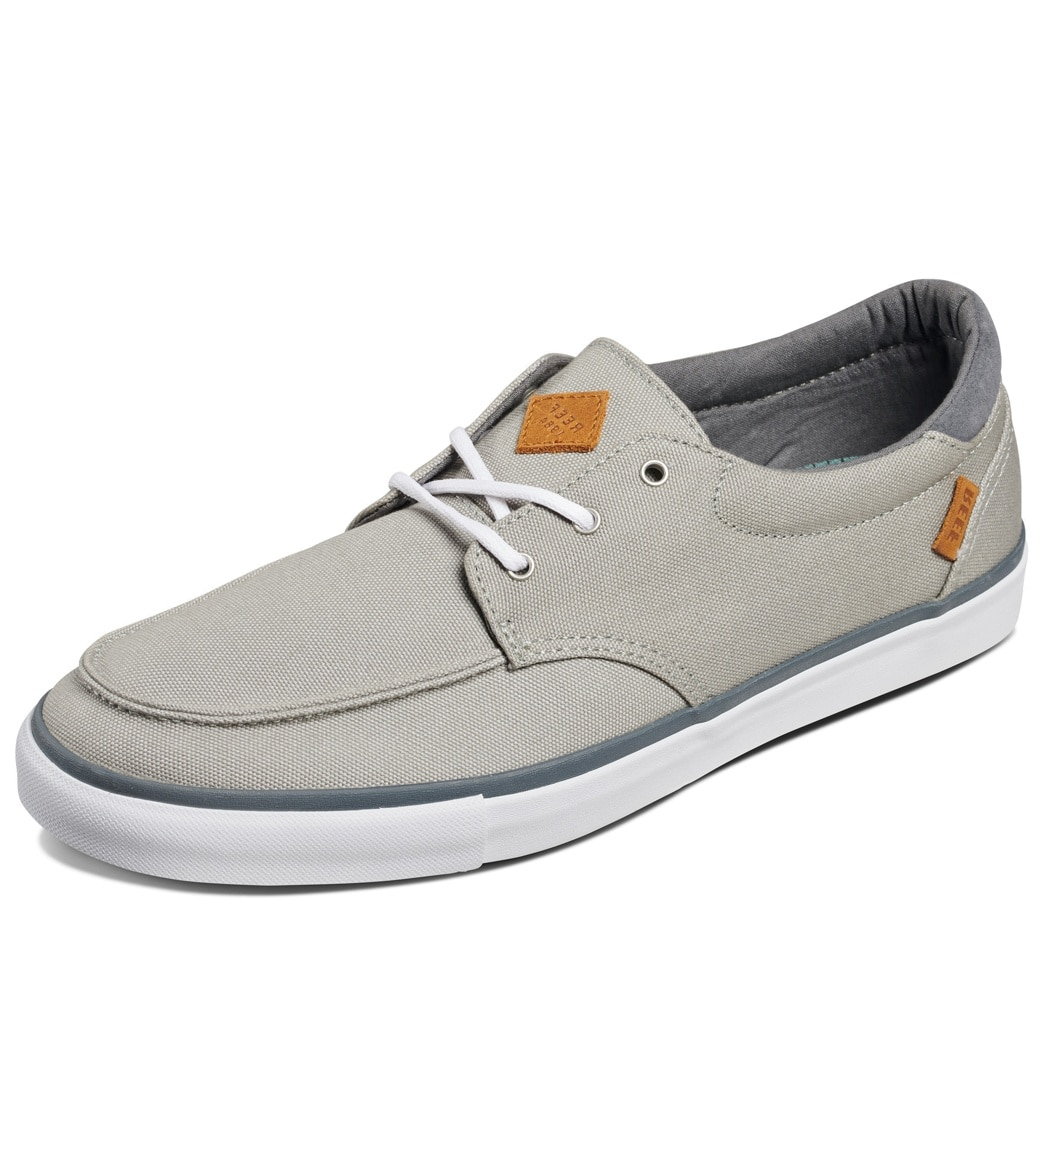 7a61a0ffbc30f Reef Men's Reef Deckhand 3 Shoe at SwimOutlet.com - Free Shipping